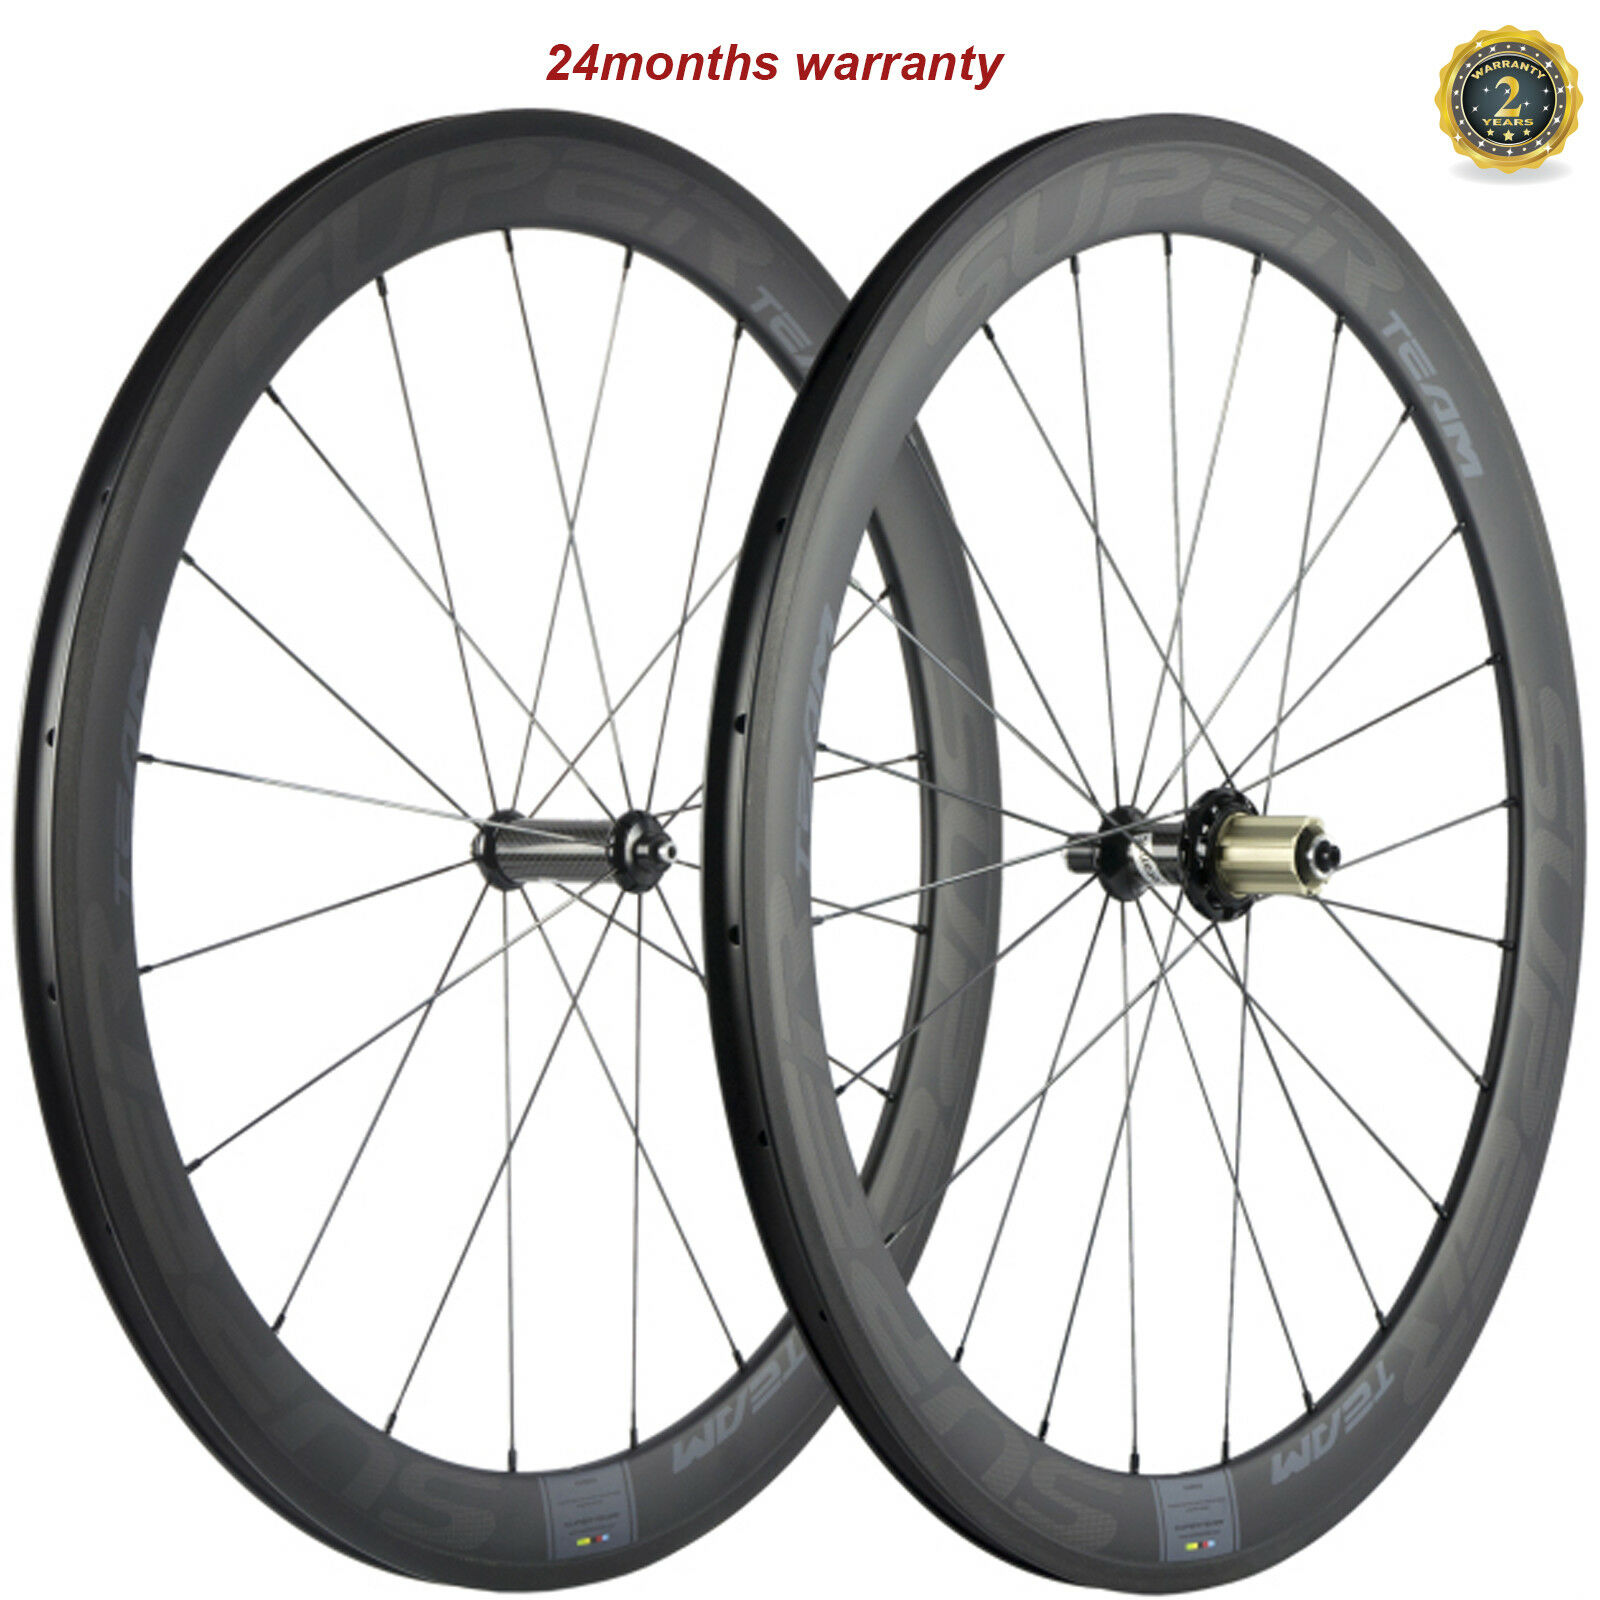 SUPERTEAM 700C Carbon Wheels 50mm Clincher Ceramic R36 Road Bicycle Wheelset